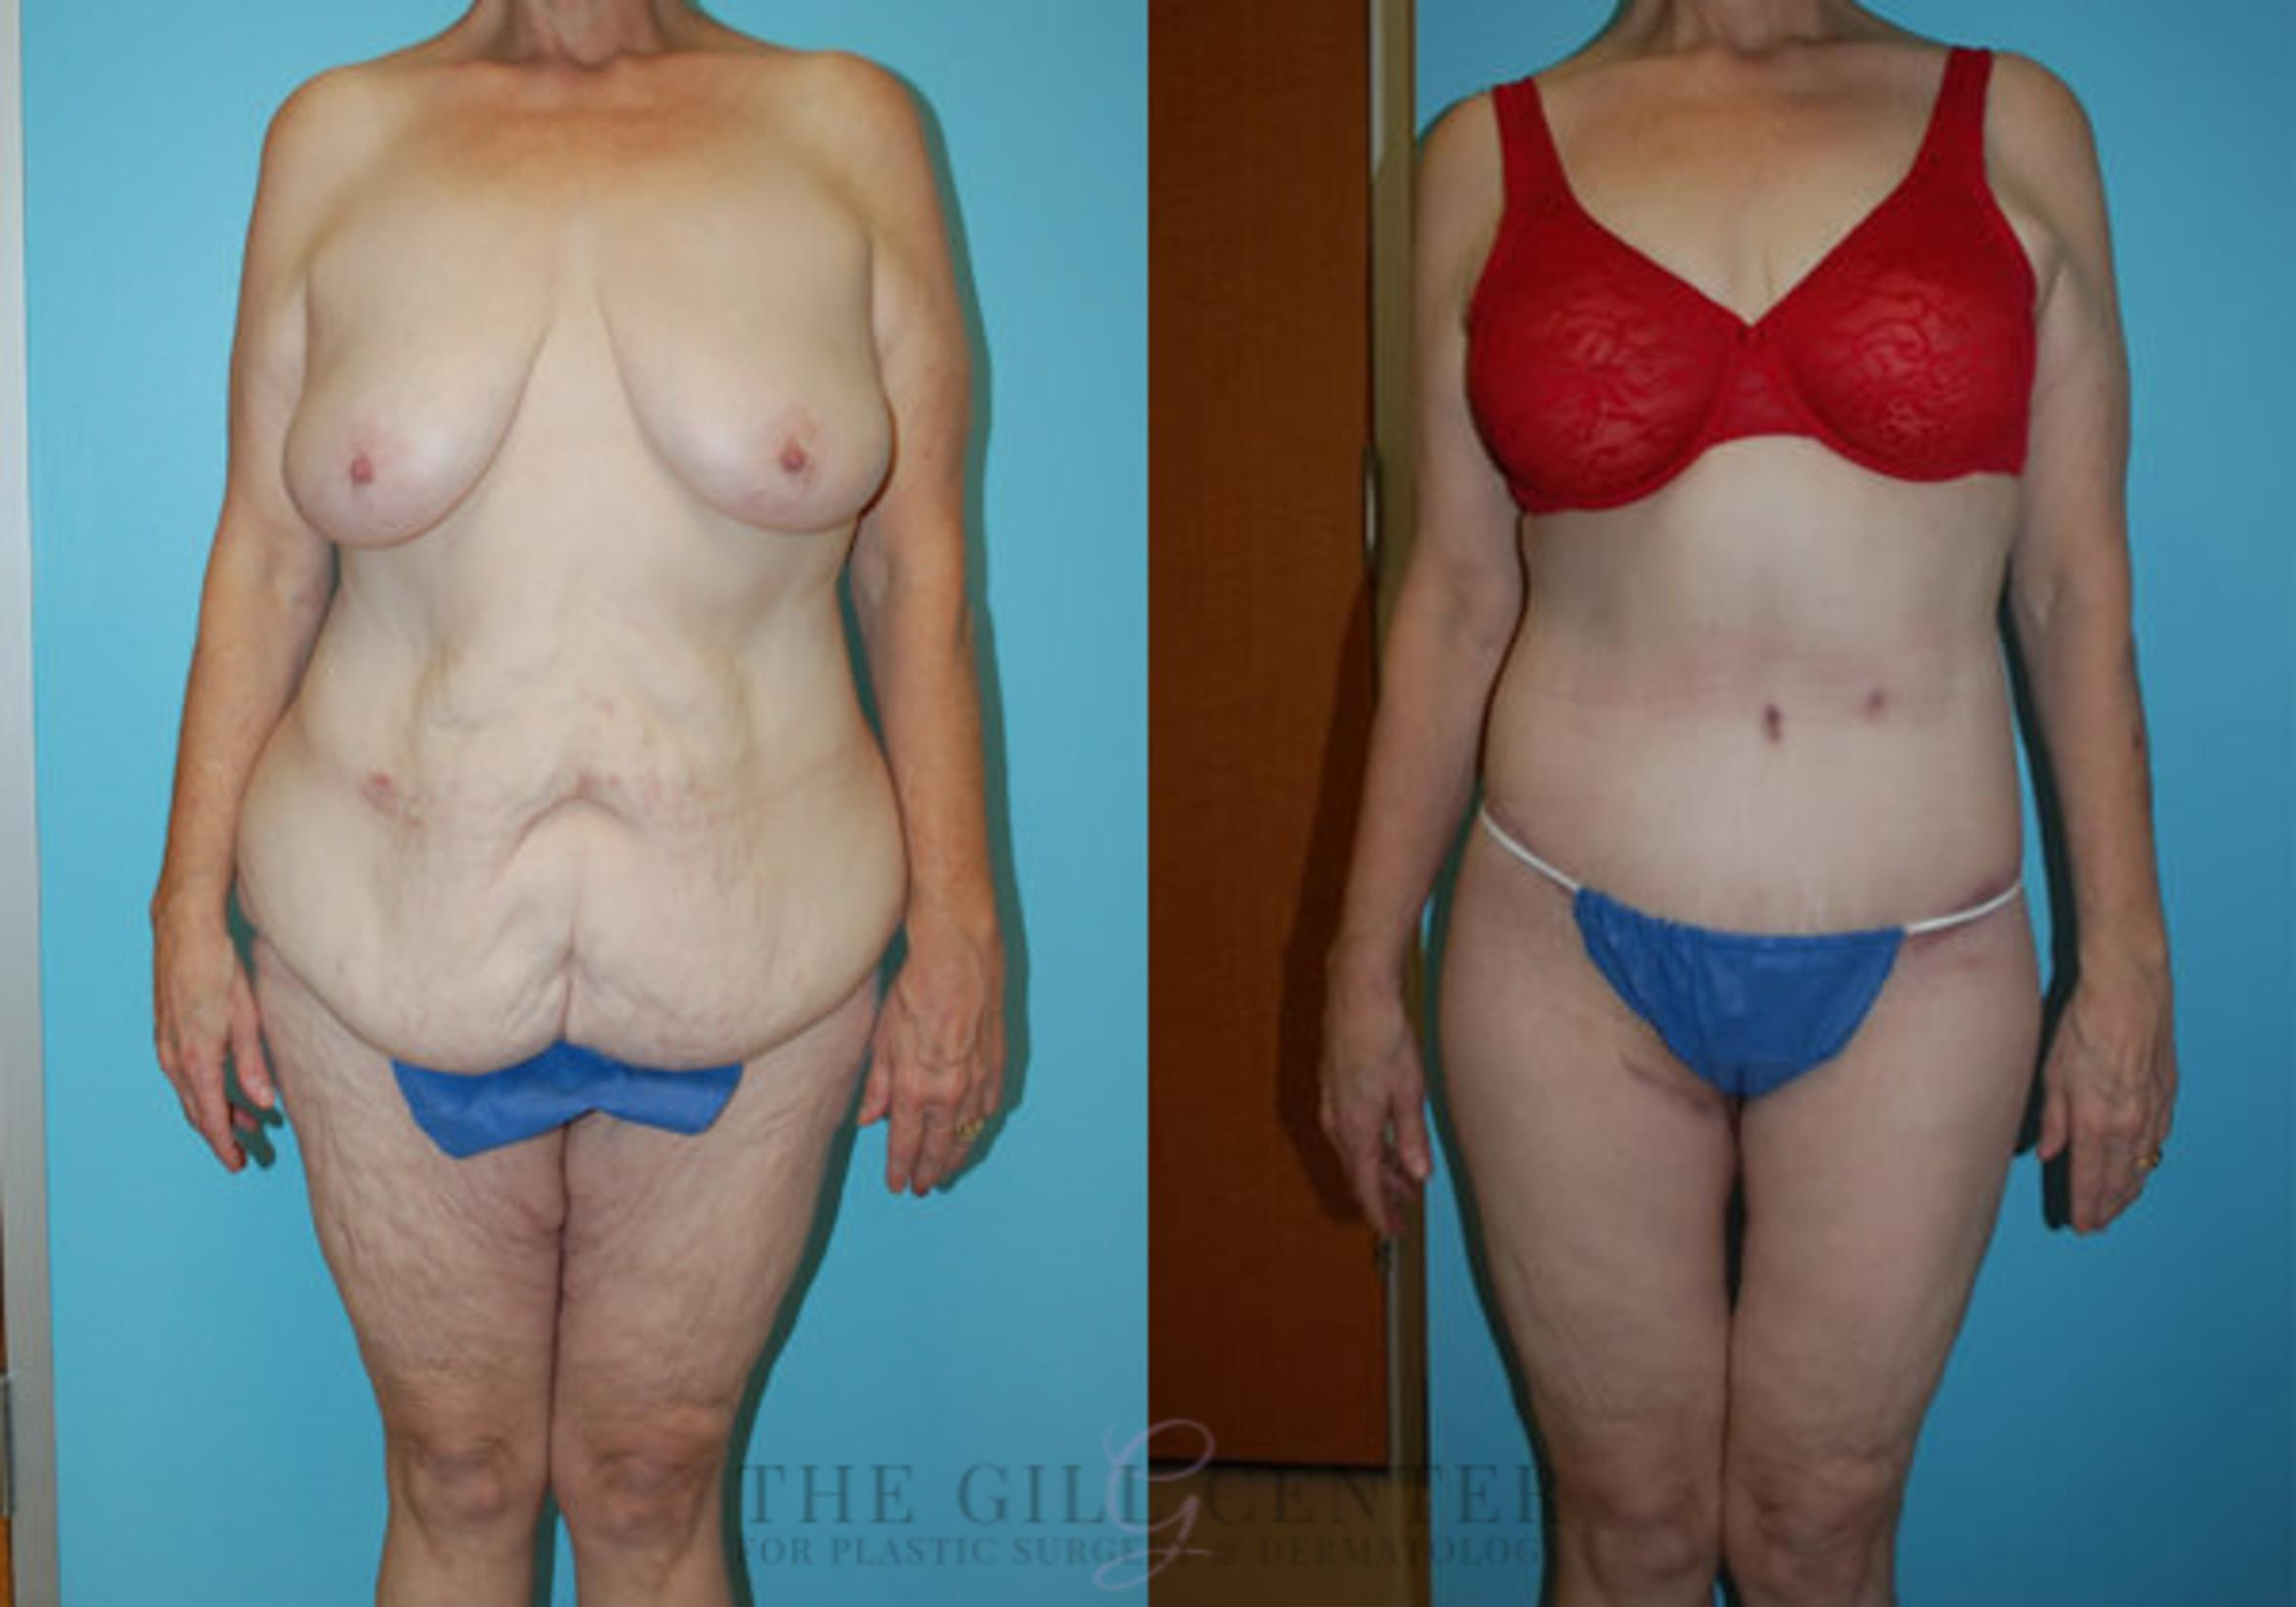 Body Lift Case 346 Before & After Front | Shenandoah, TX | The Gill Center for Plastic Surgery and Dermatology